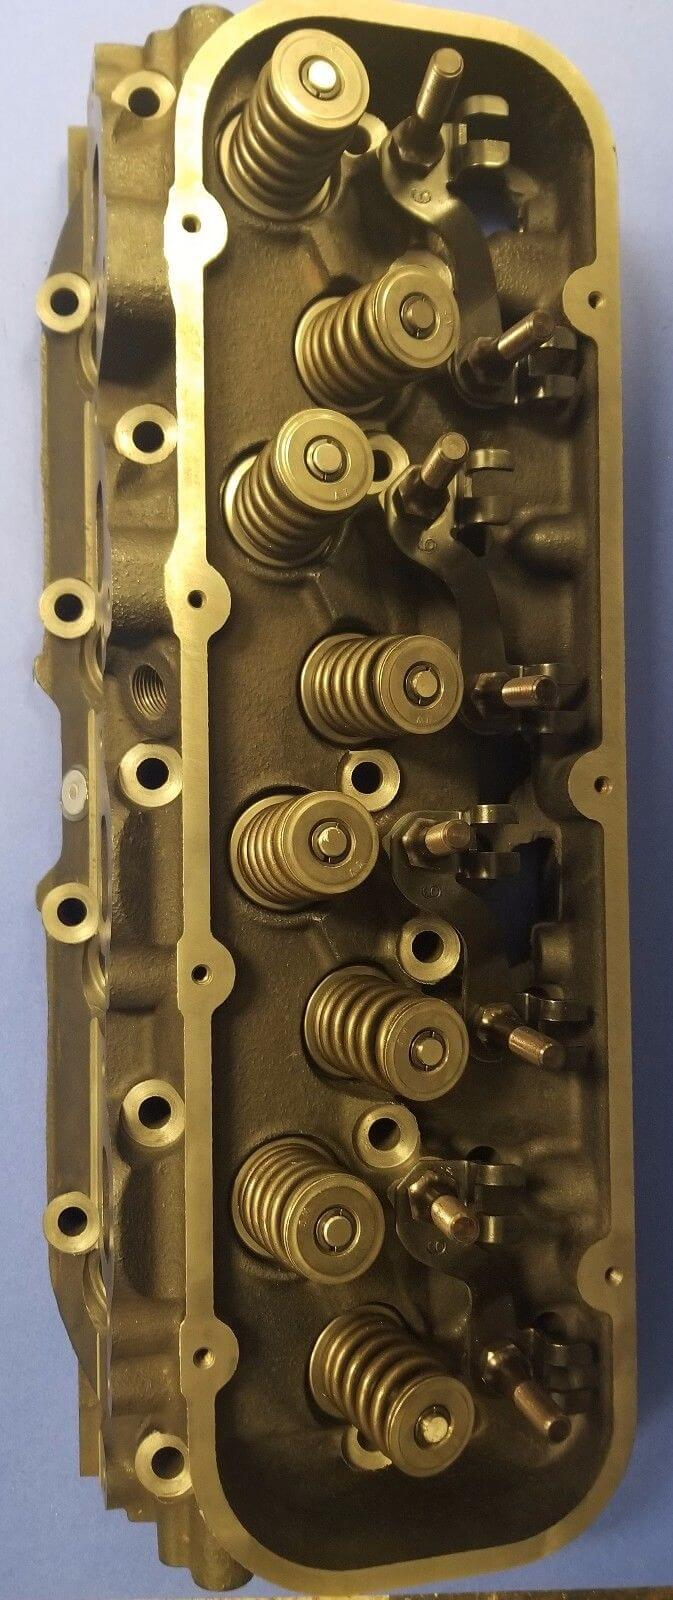 NEW GM MARINE BBC 7 4 454 OVAL PORT CONVERSION CYLINDER HEAD CAST#236 360  045